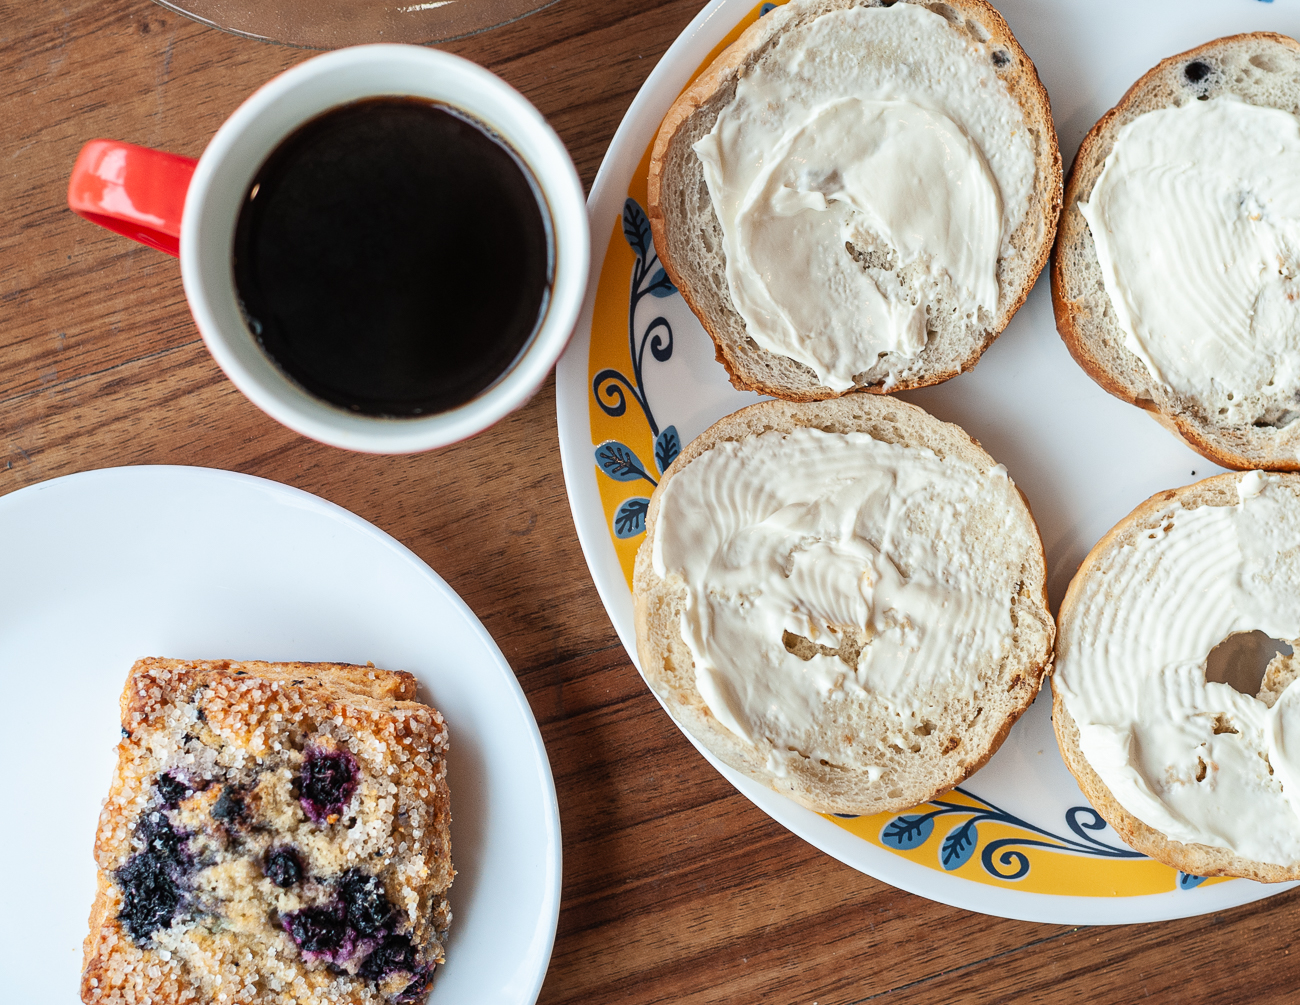 Blueberry scone, black coffee, and bagels{ }/ Image: Kellie Coleman // Published: 1.31.21